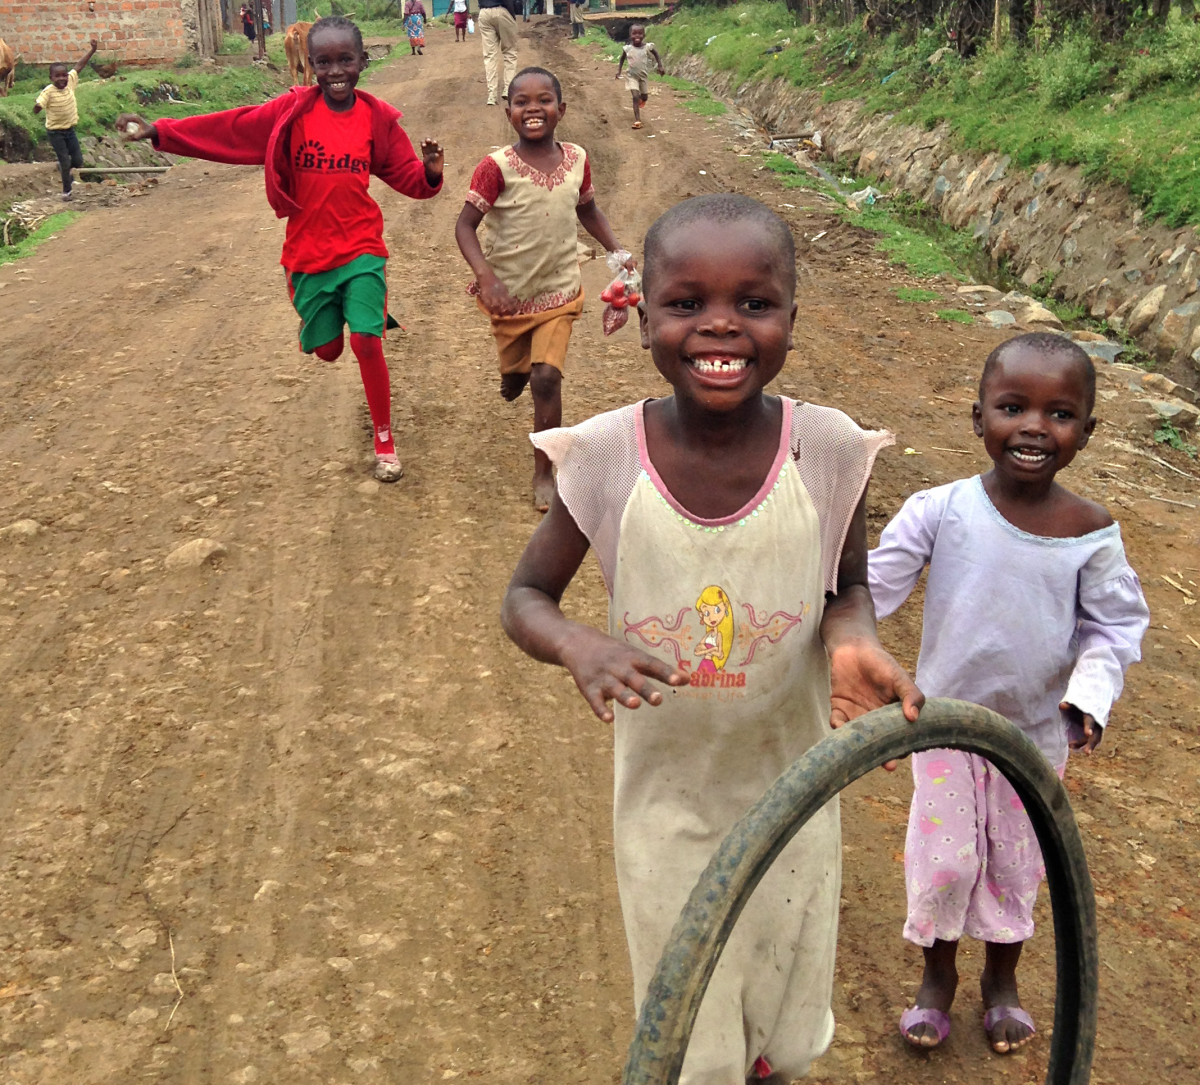 children playing in Kenya